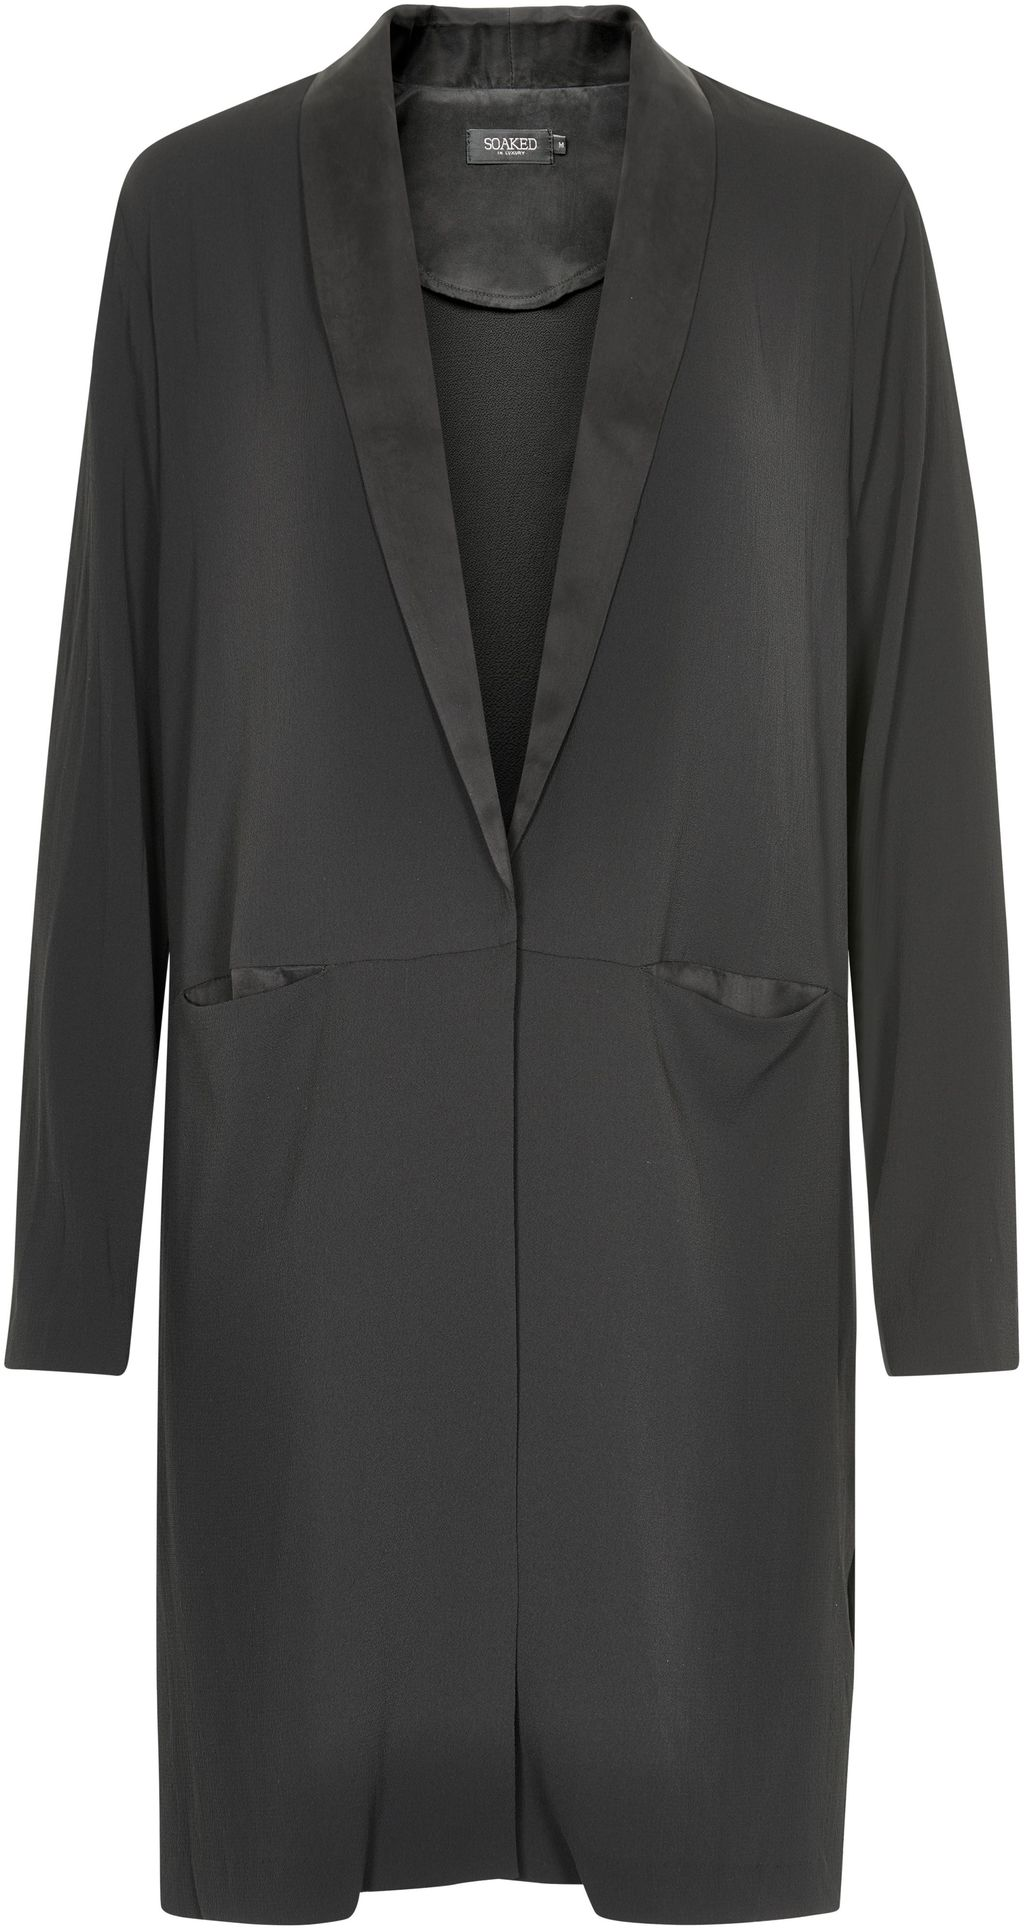 Long Jacket, Black - pattern: plain; style: single breasted blazer; fit: loose; collar: standard lapel/rever collar; length: above the knee; predominant colour: black; occasions: work, creative work; fibres: polyester/polyamide - 100%; sleeve length: long sleeve; sleeve style: standard; collar break: medium; pattern type: fabric; texture group: woven light midweight; season: s/s 2016